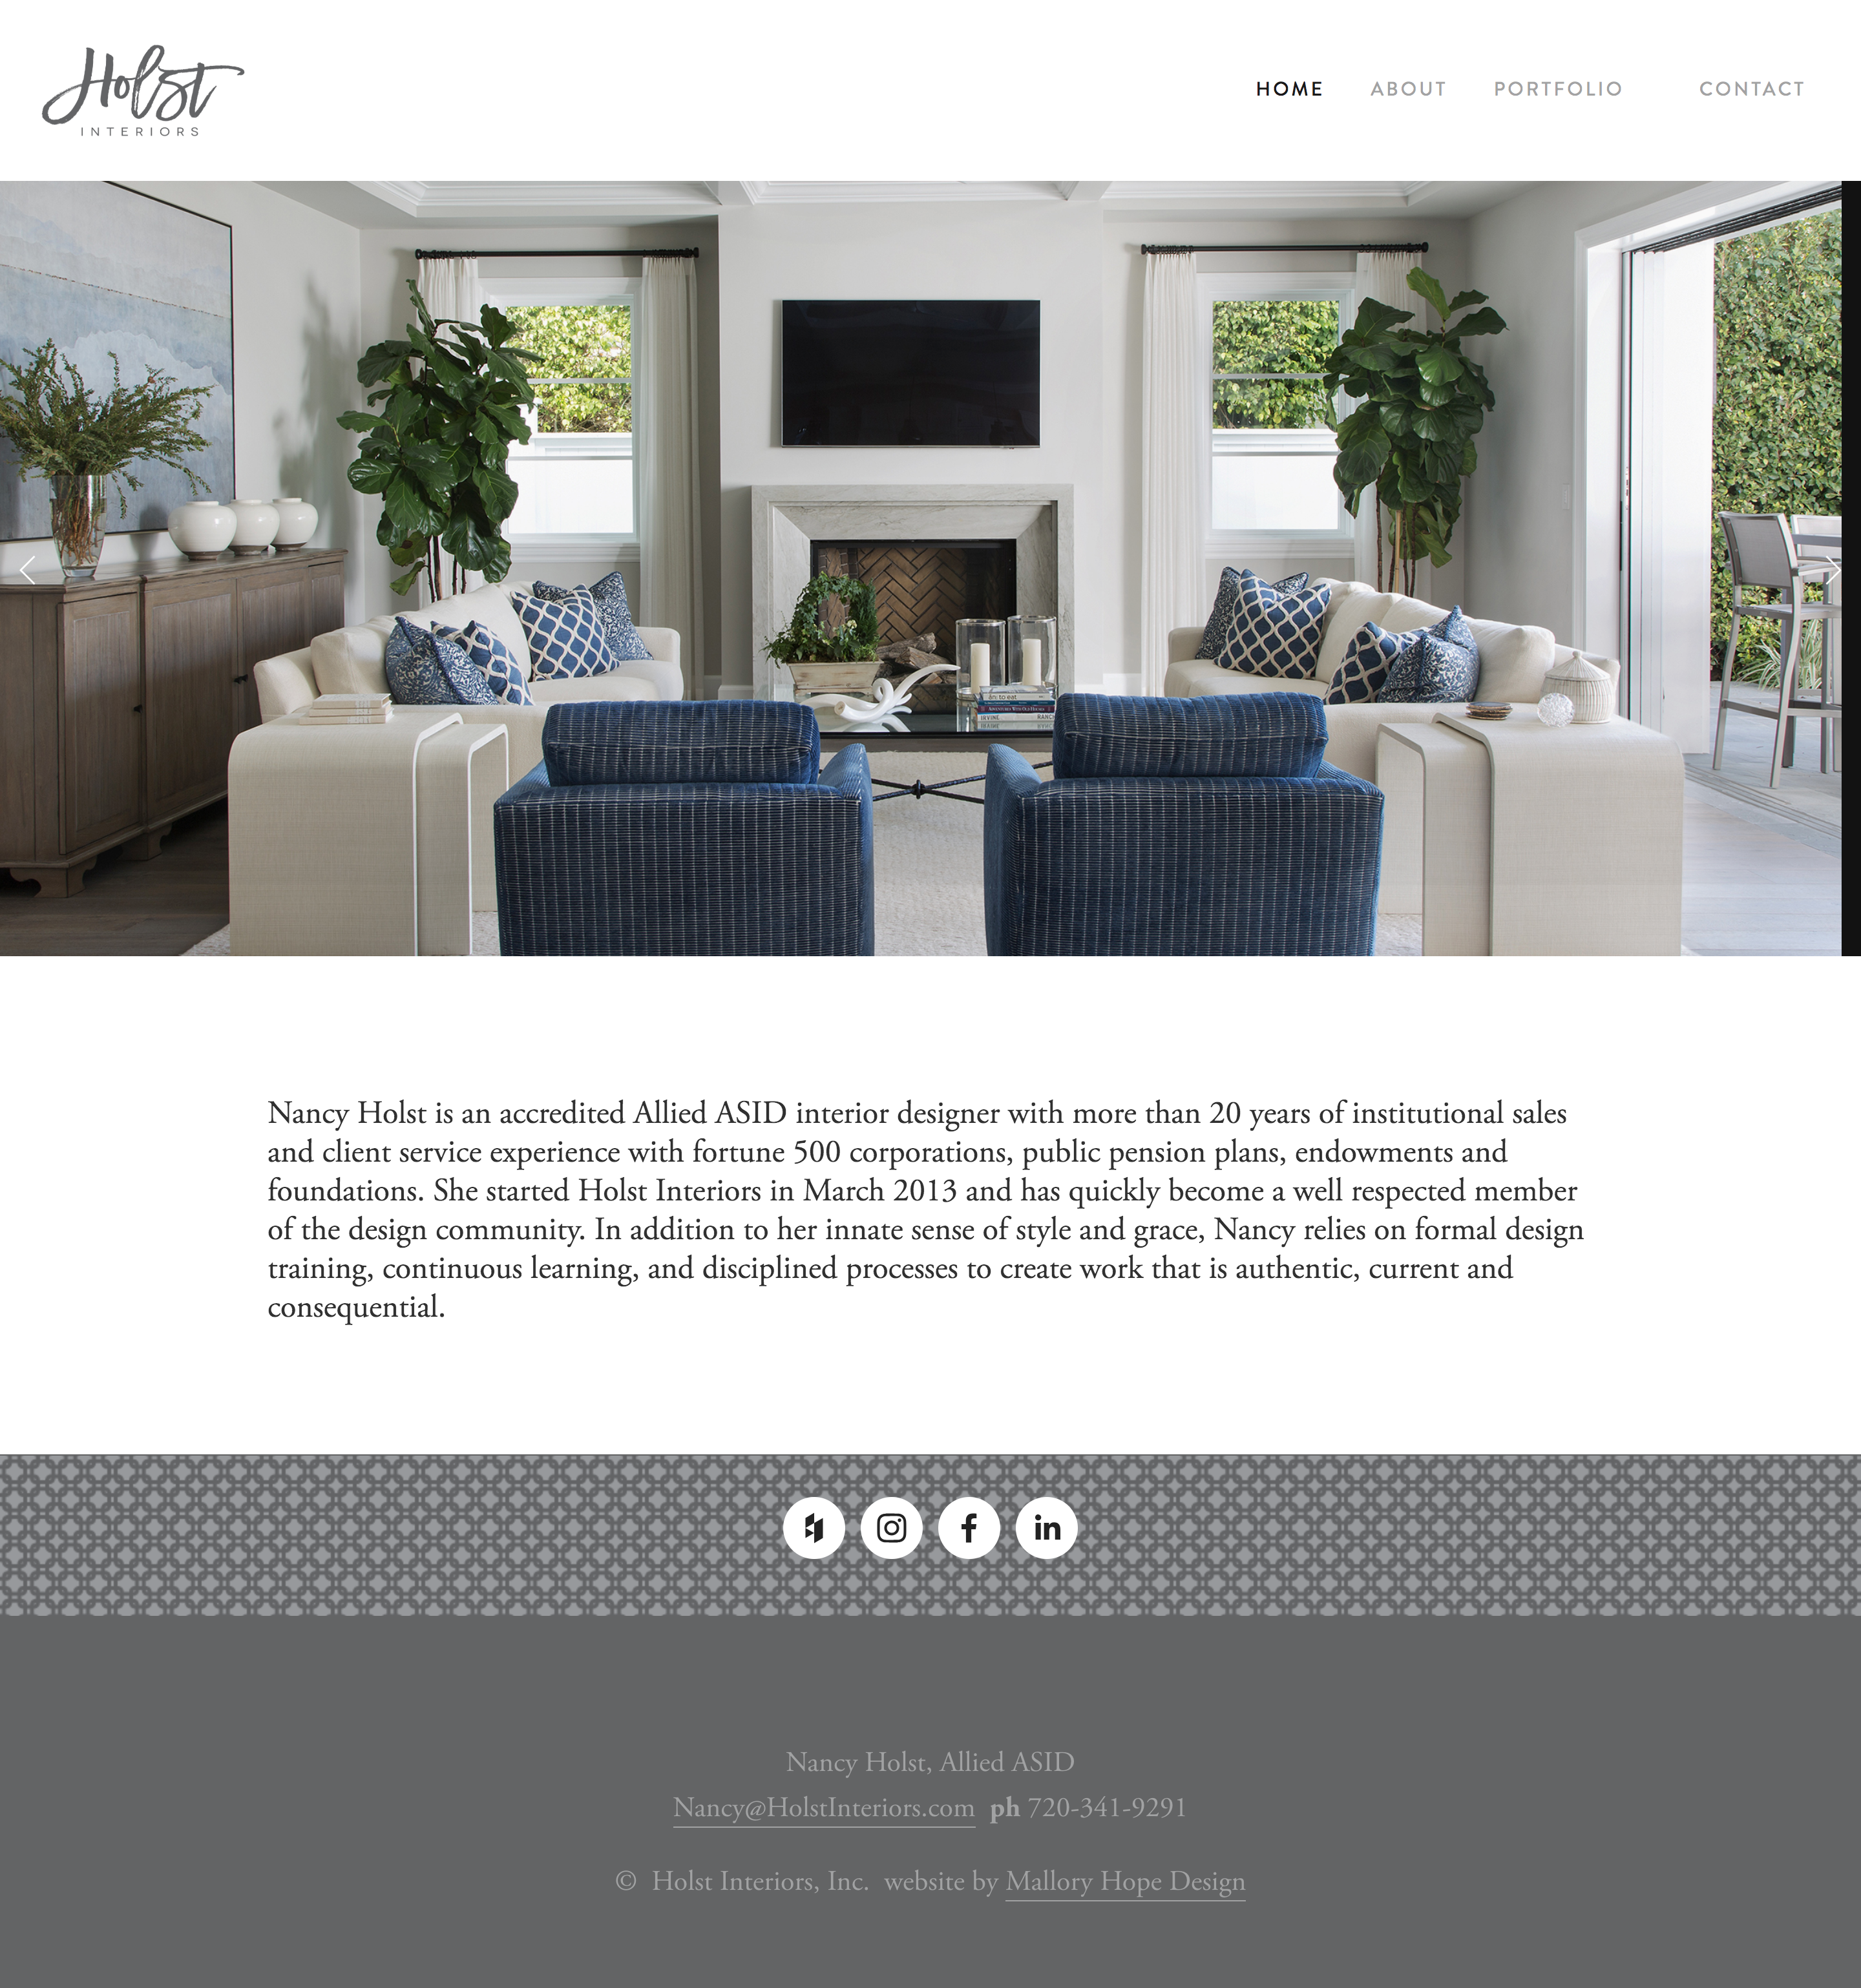 screencapture-holstinteriors-2018-06-11-14-46-50.png